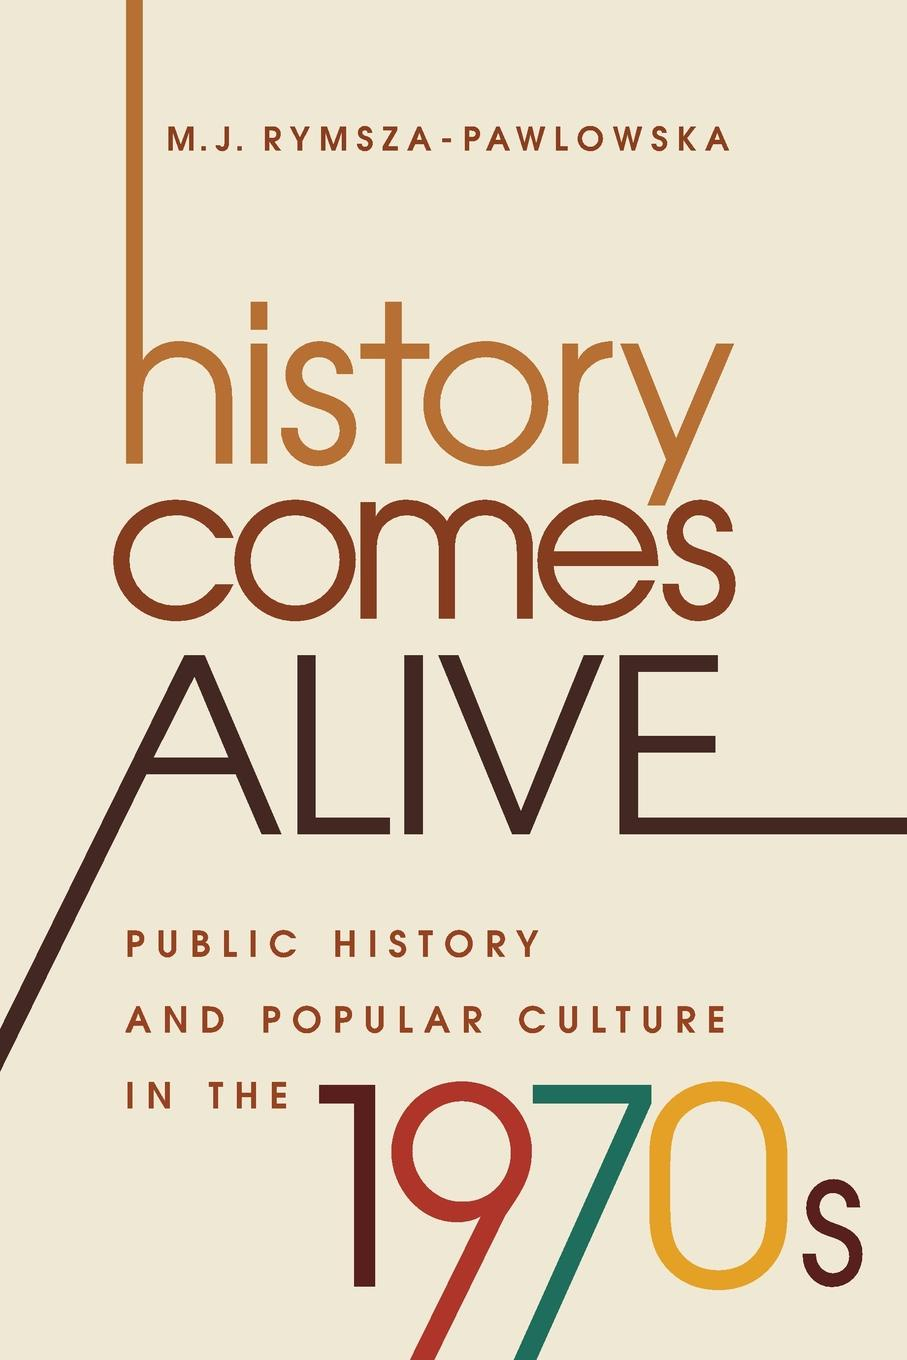 M. J. Rymsza-Pawlowska History Comes Alive. Public History and Popular Culture in the 1970s in search of our roots how l9 extraordinary african americans reclaimed their past